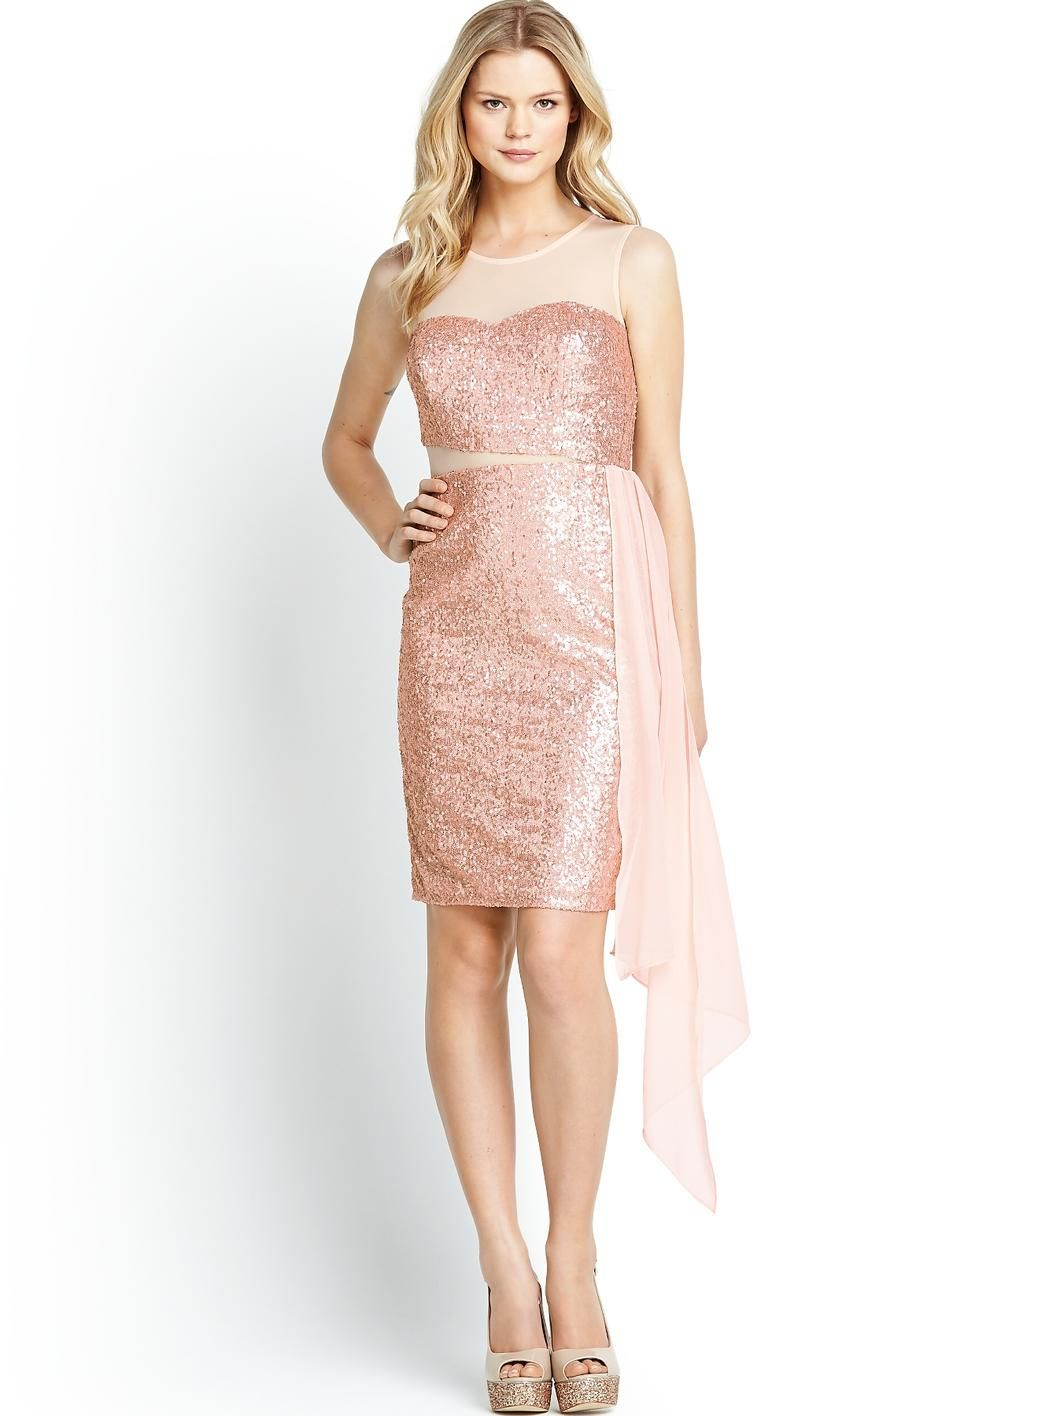 Sequin and Mesh Dress, £27 http://www.littlewoods.com/definitions ...